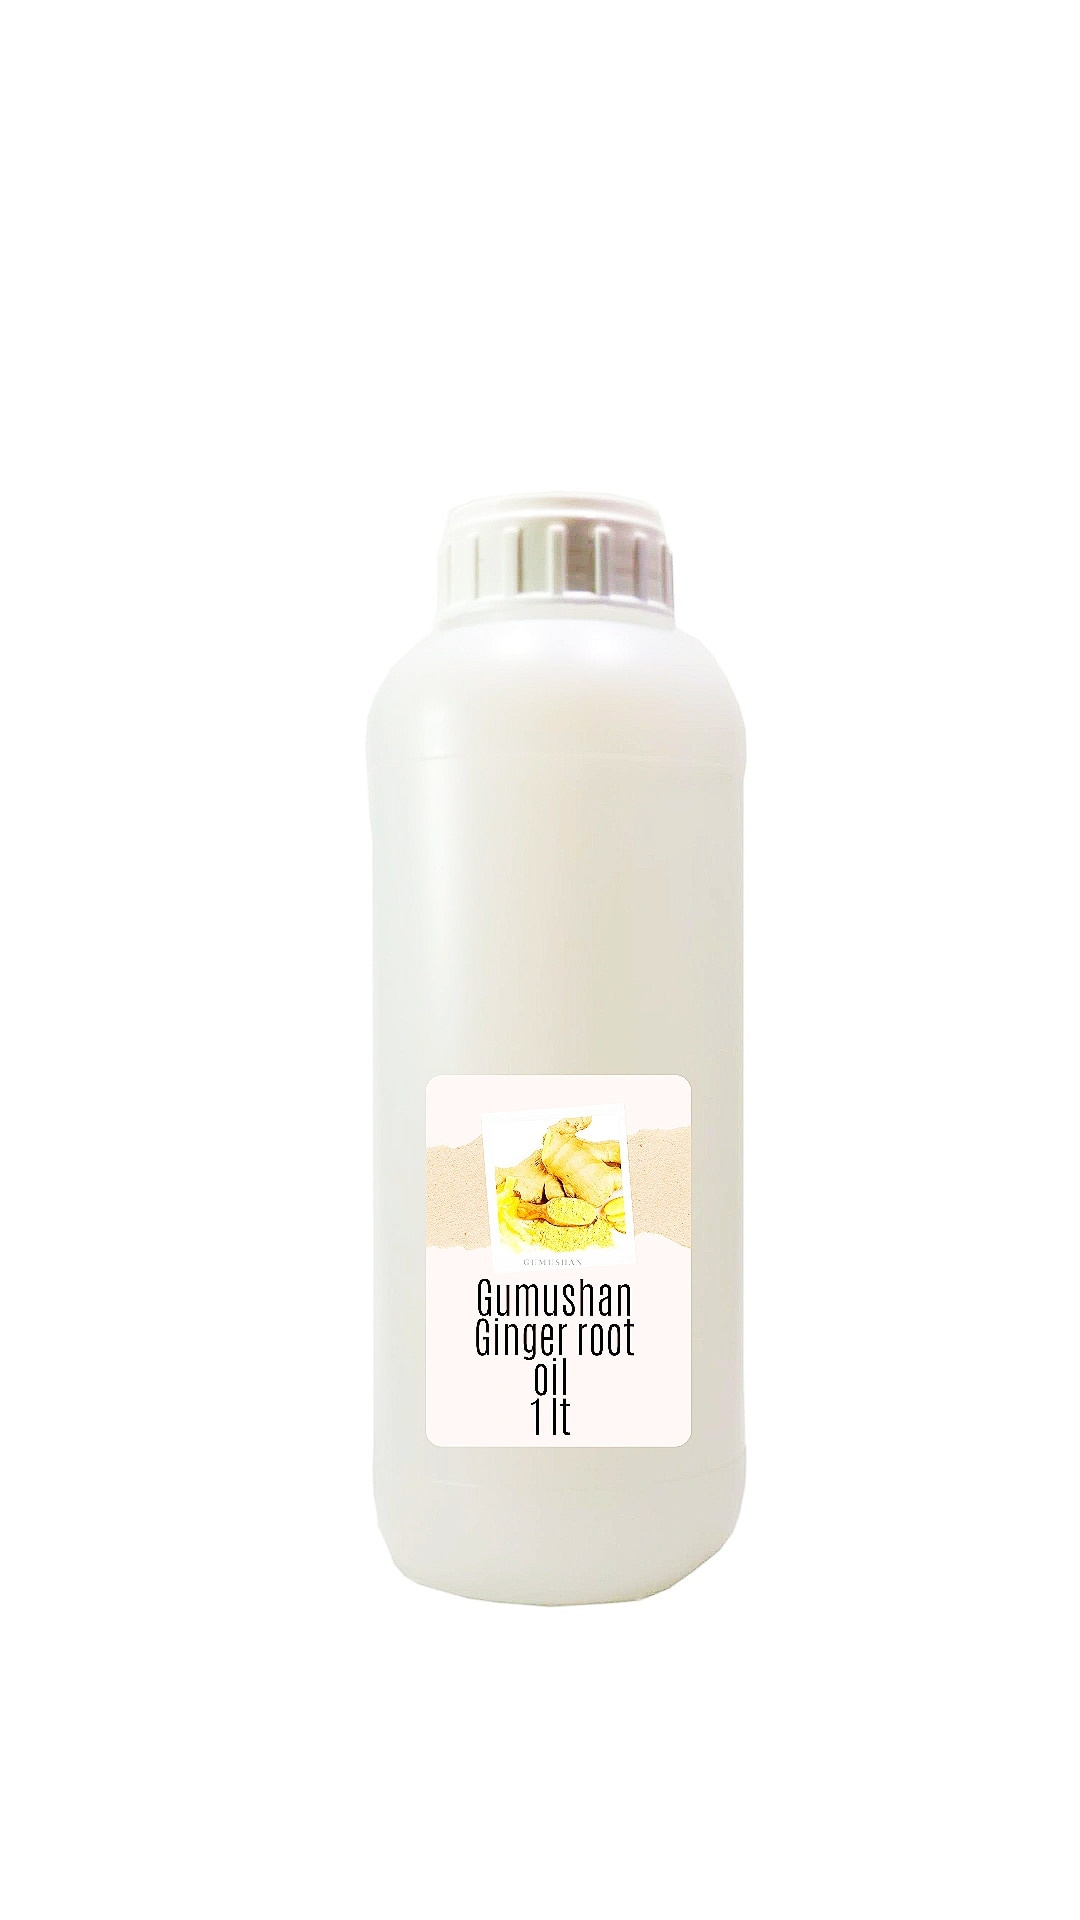 High quality pure Ginger Root Oil 1 liter 34 fl oz 1000ml